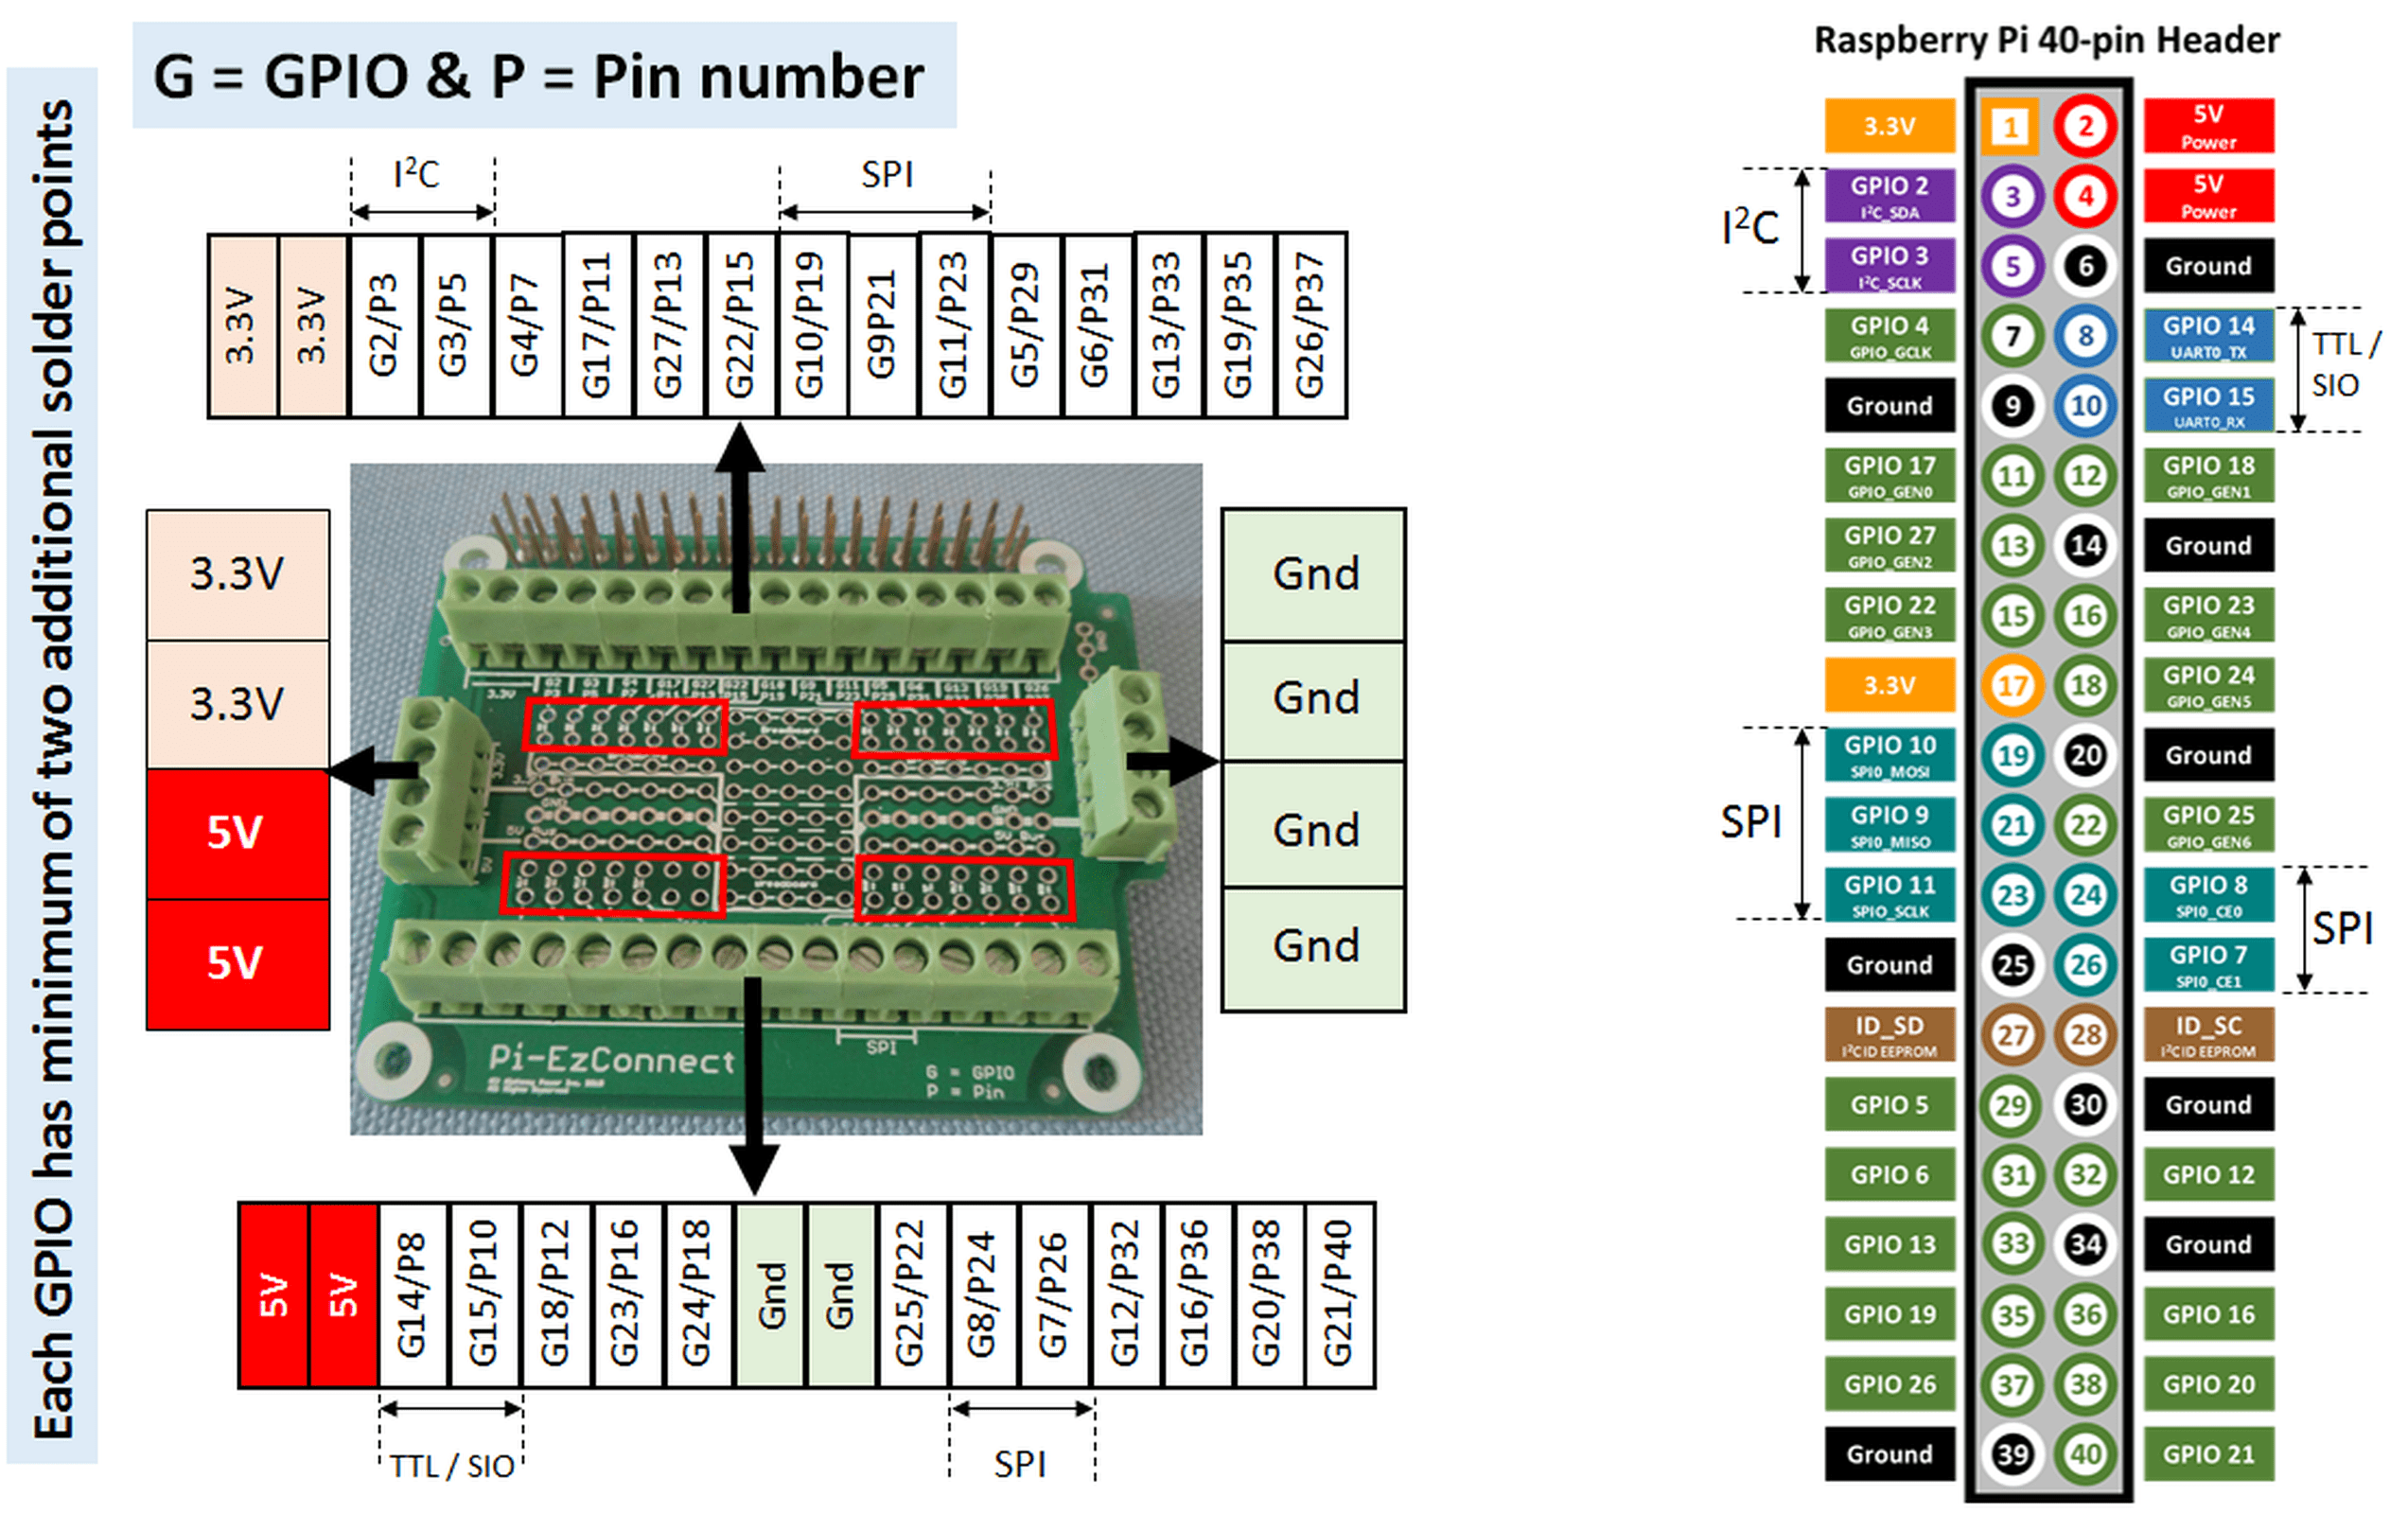 raspberry pi gpio wiring diagram rover 75 electrical ezconnect easy to connect from